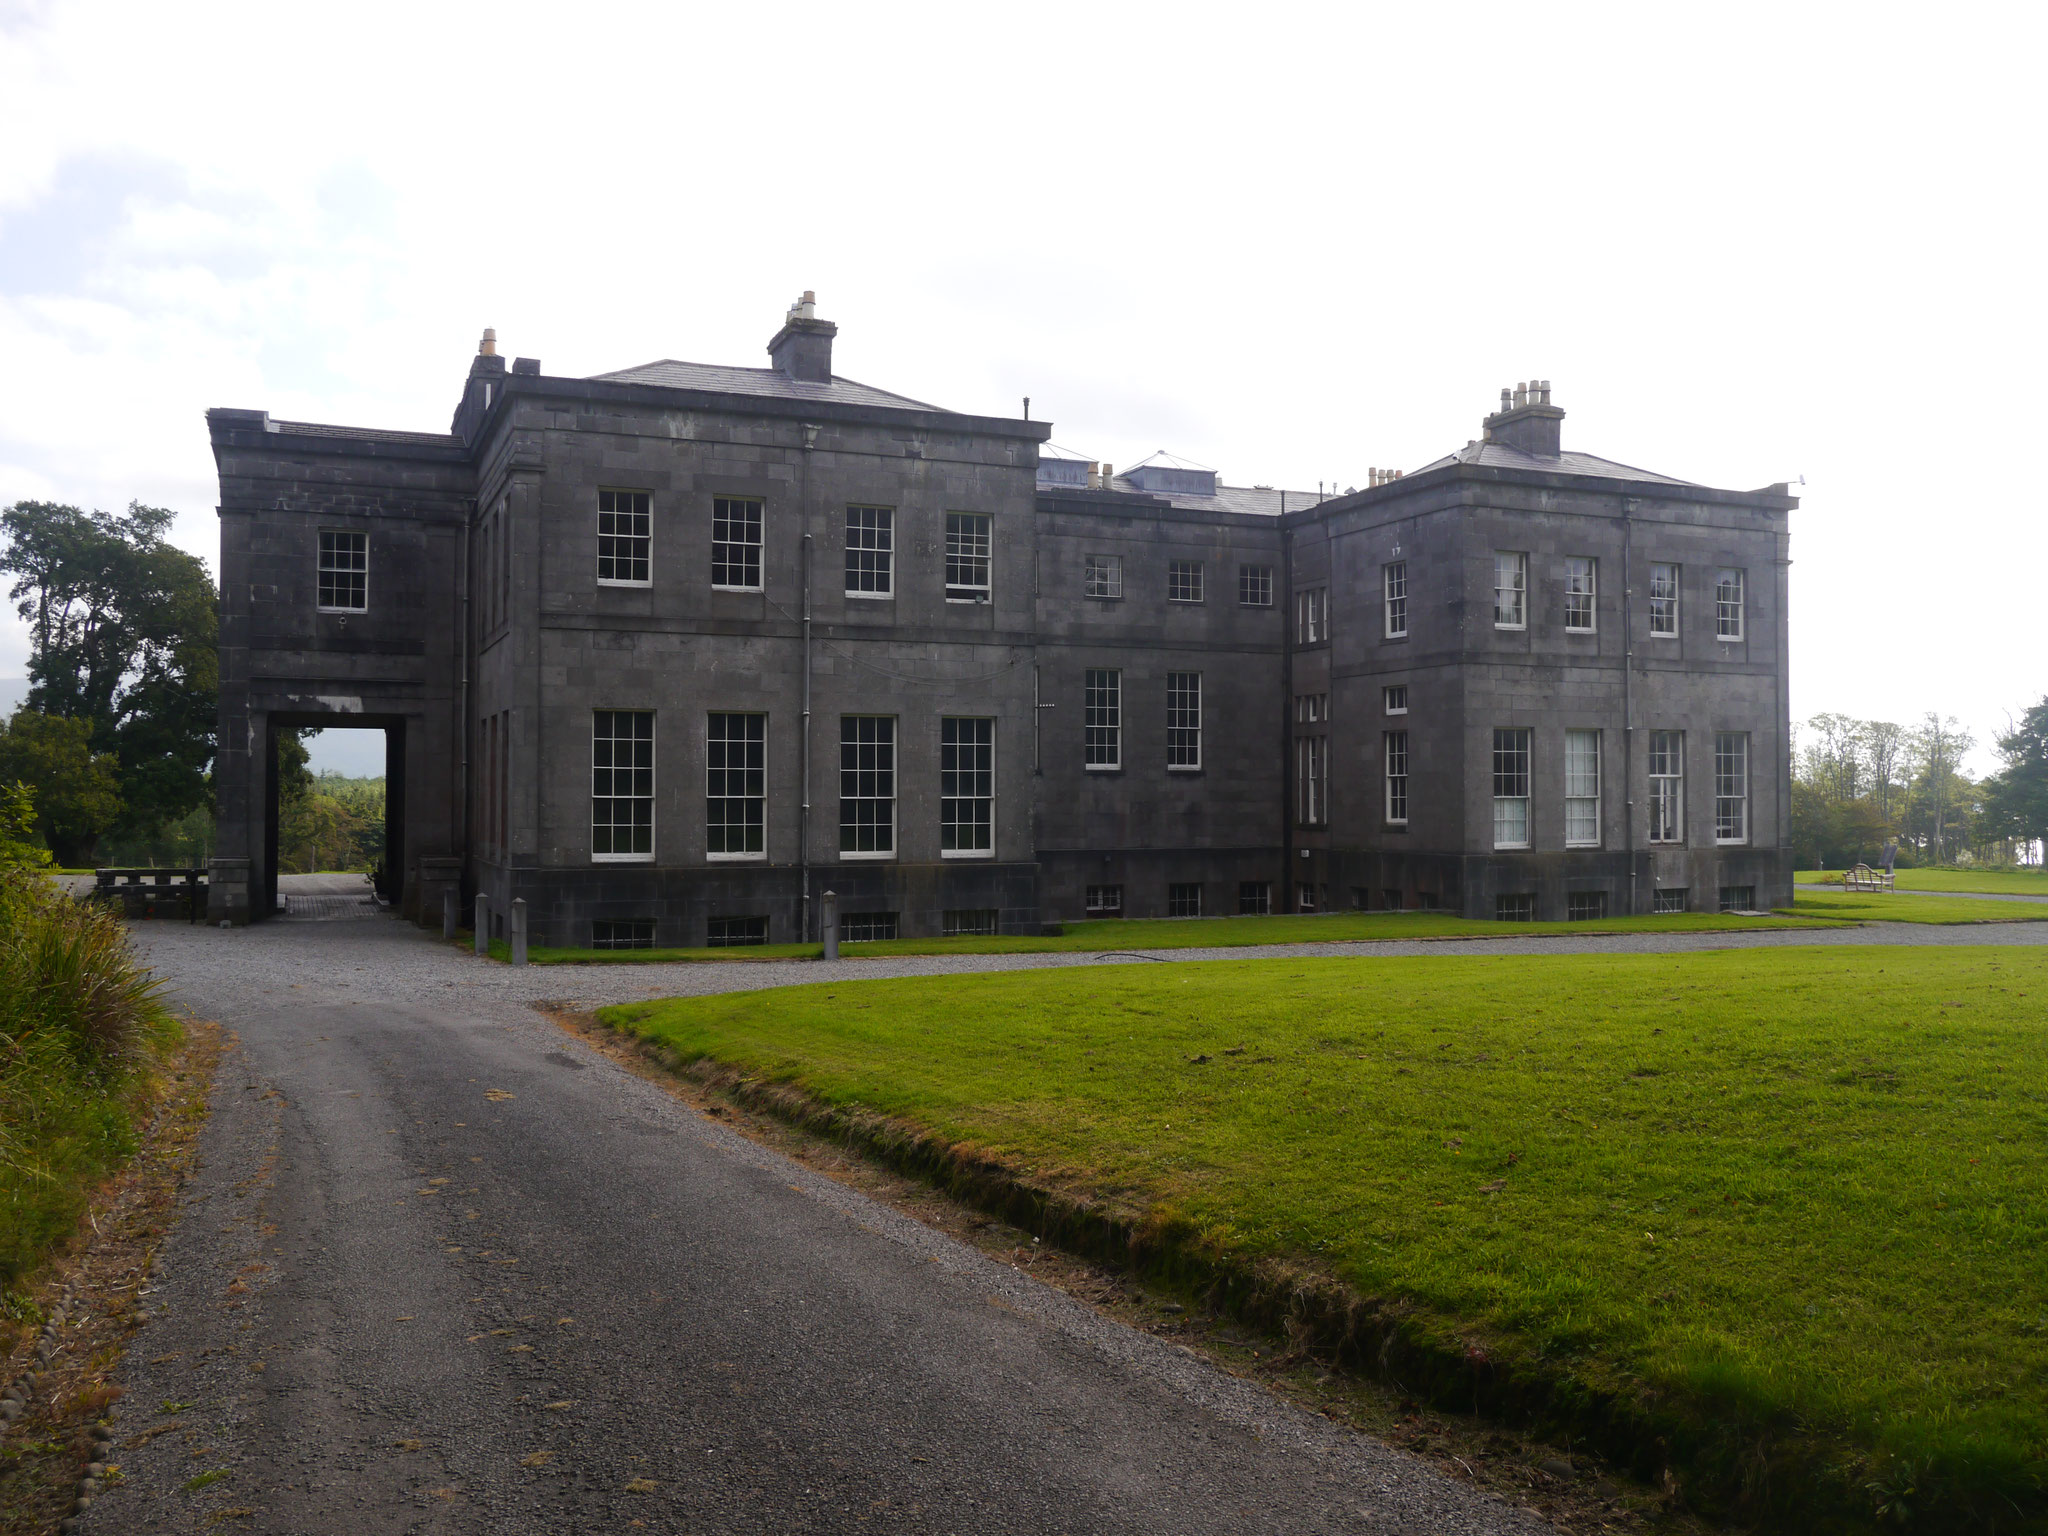 Lissadell House, Sligo. 2015